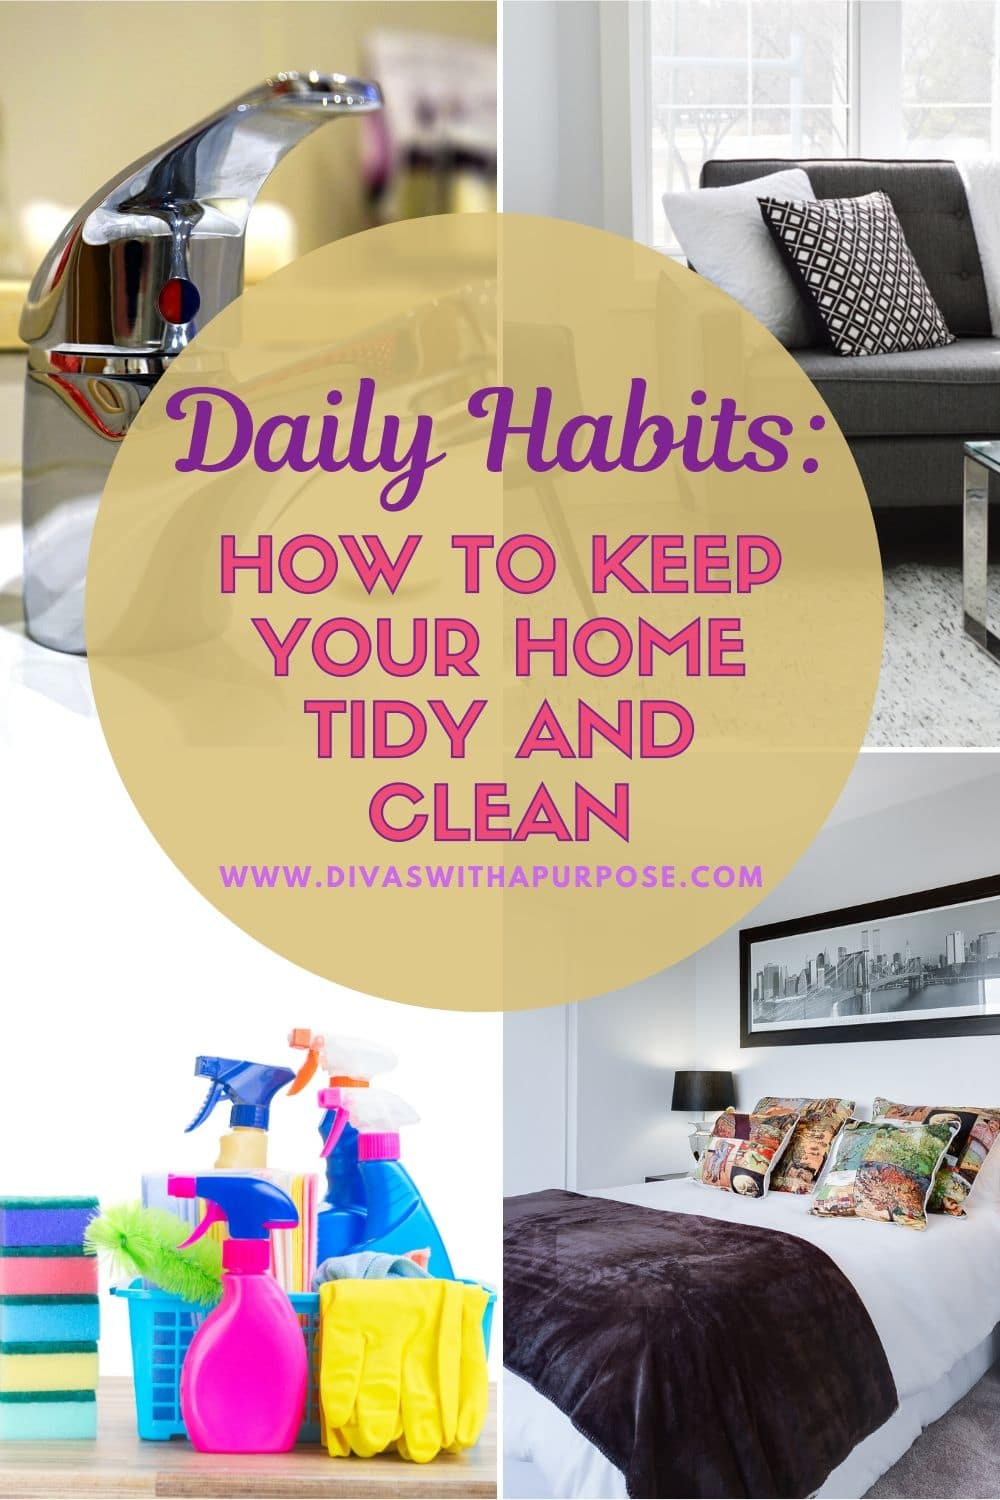 Guest Post: Daily Habits How to keep your home tidy and clean #dailyhabits #cleaningtips